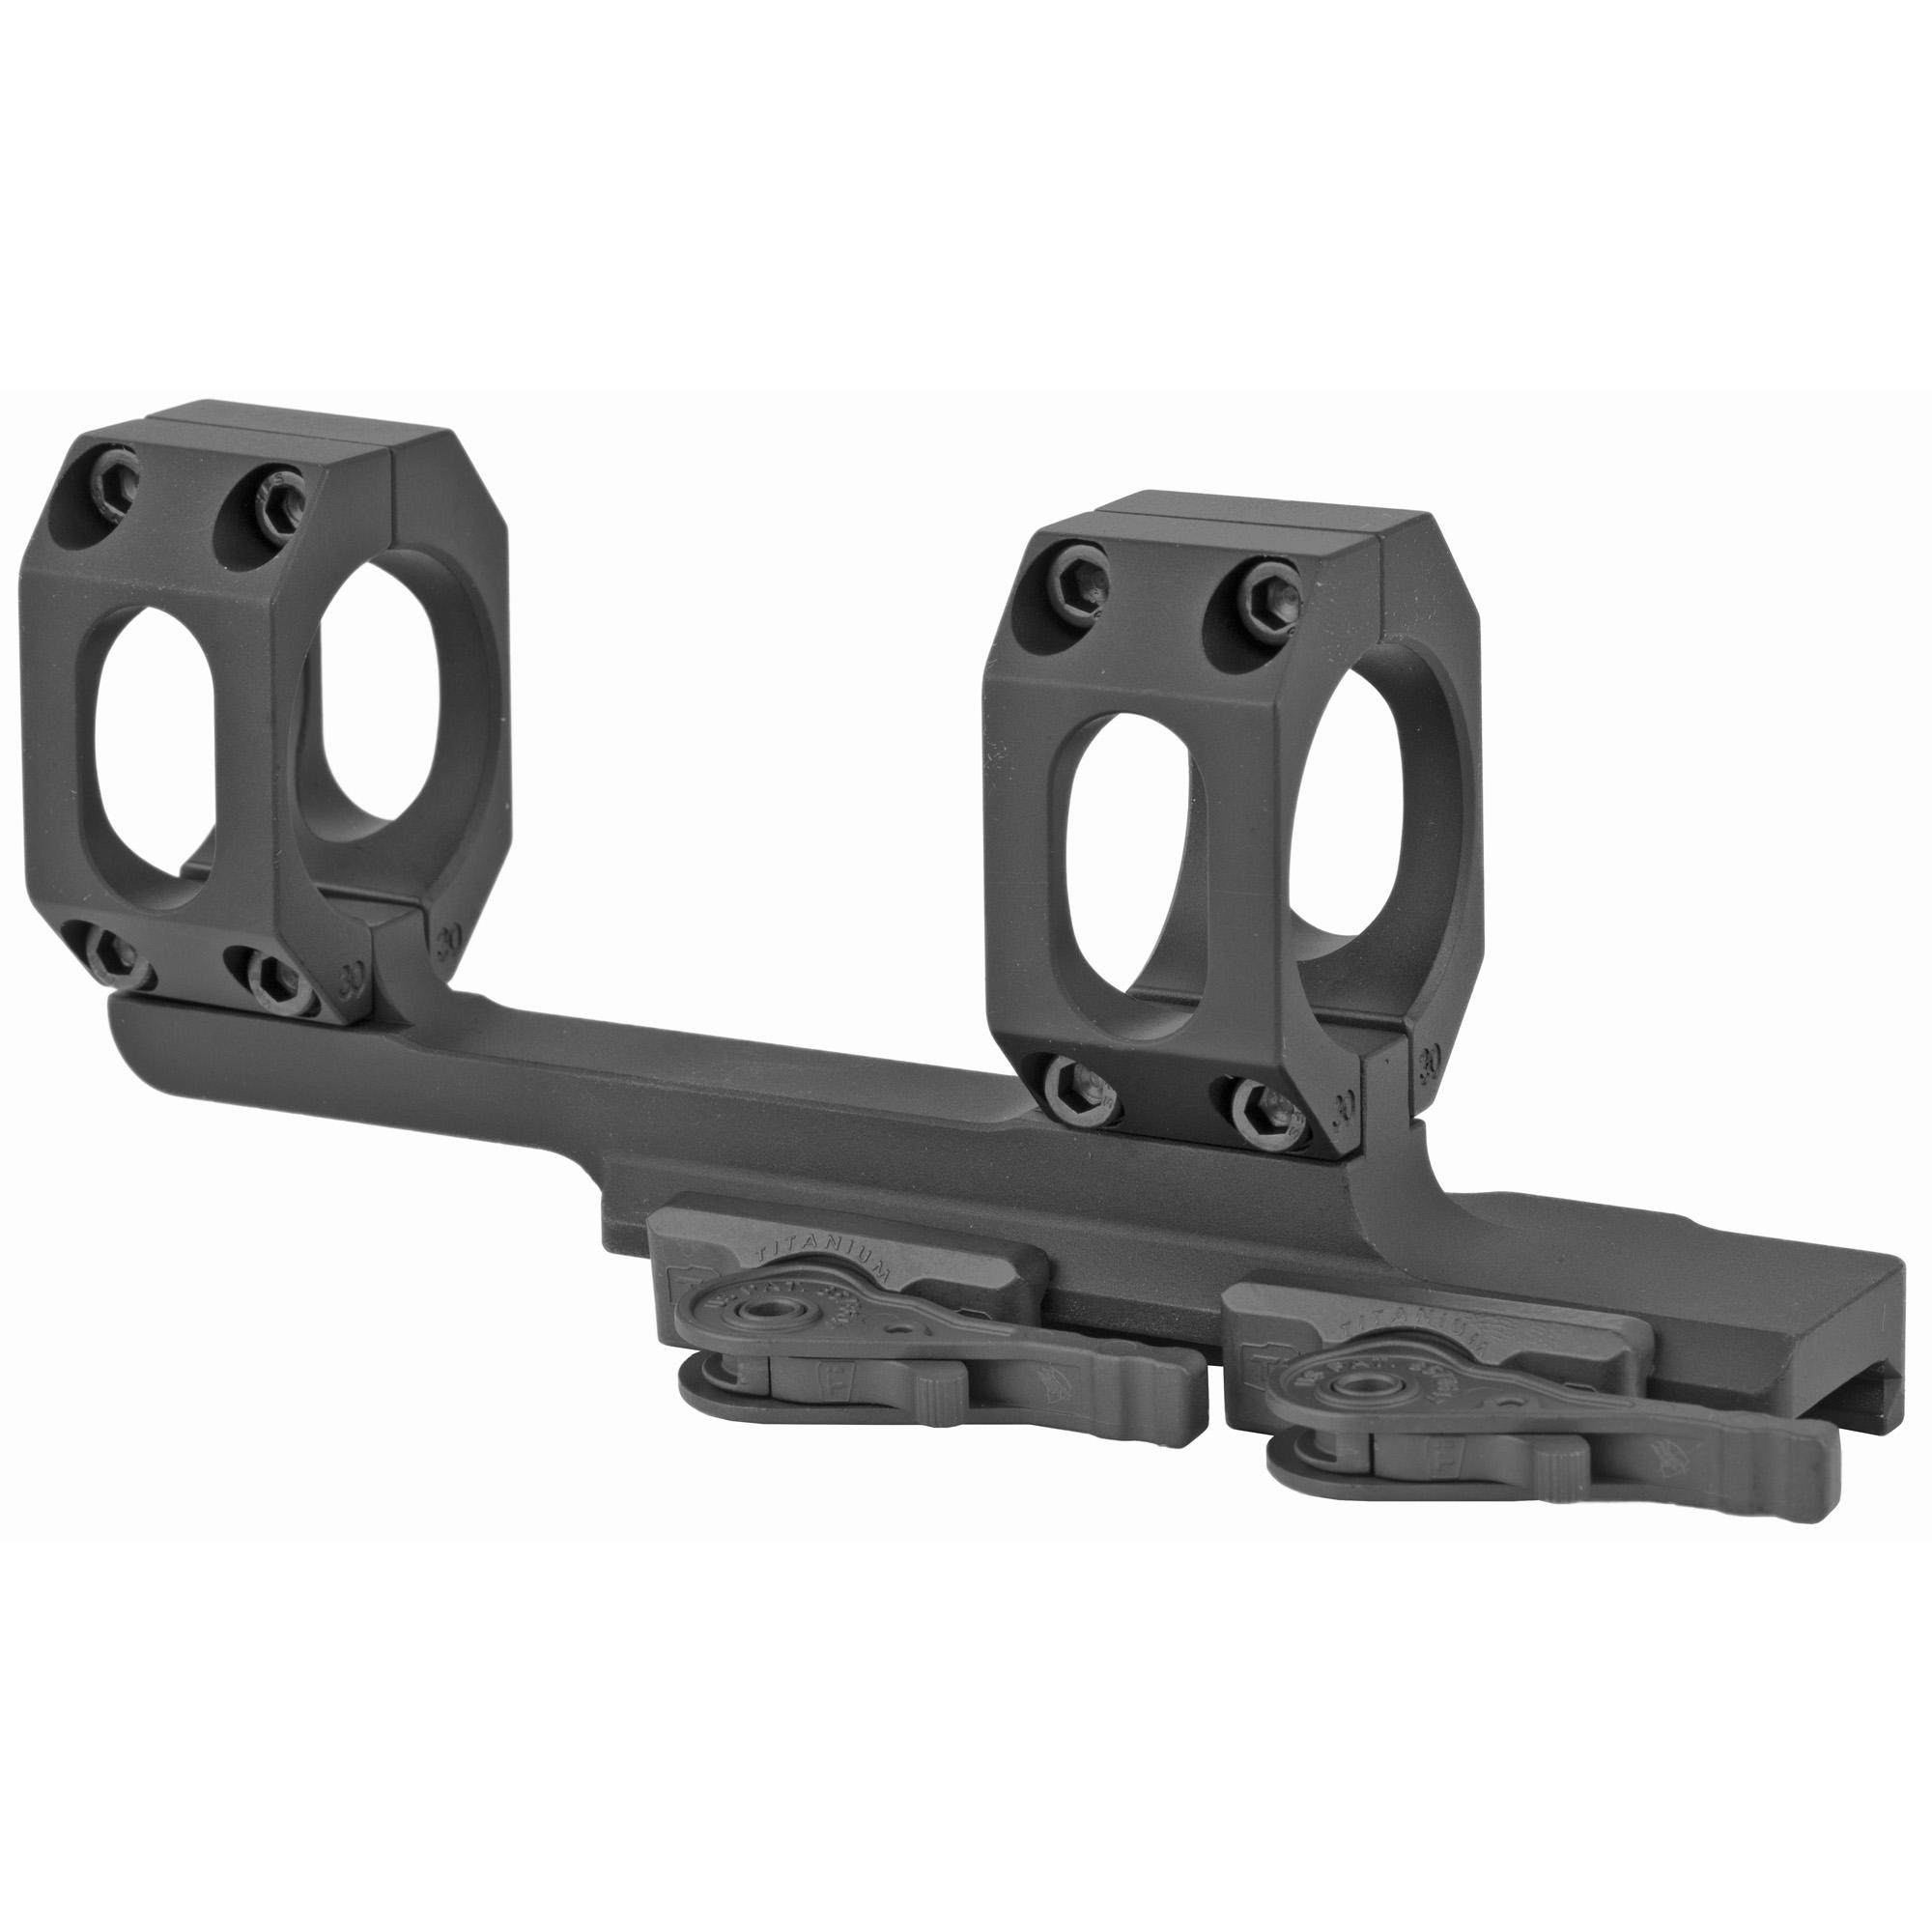 American Defense Mfg. American Defense Mfg. Scope Mount 30mm Dual Quick Release Ti